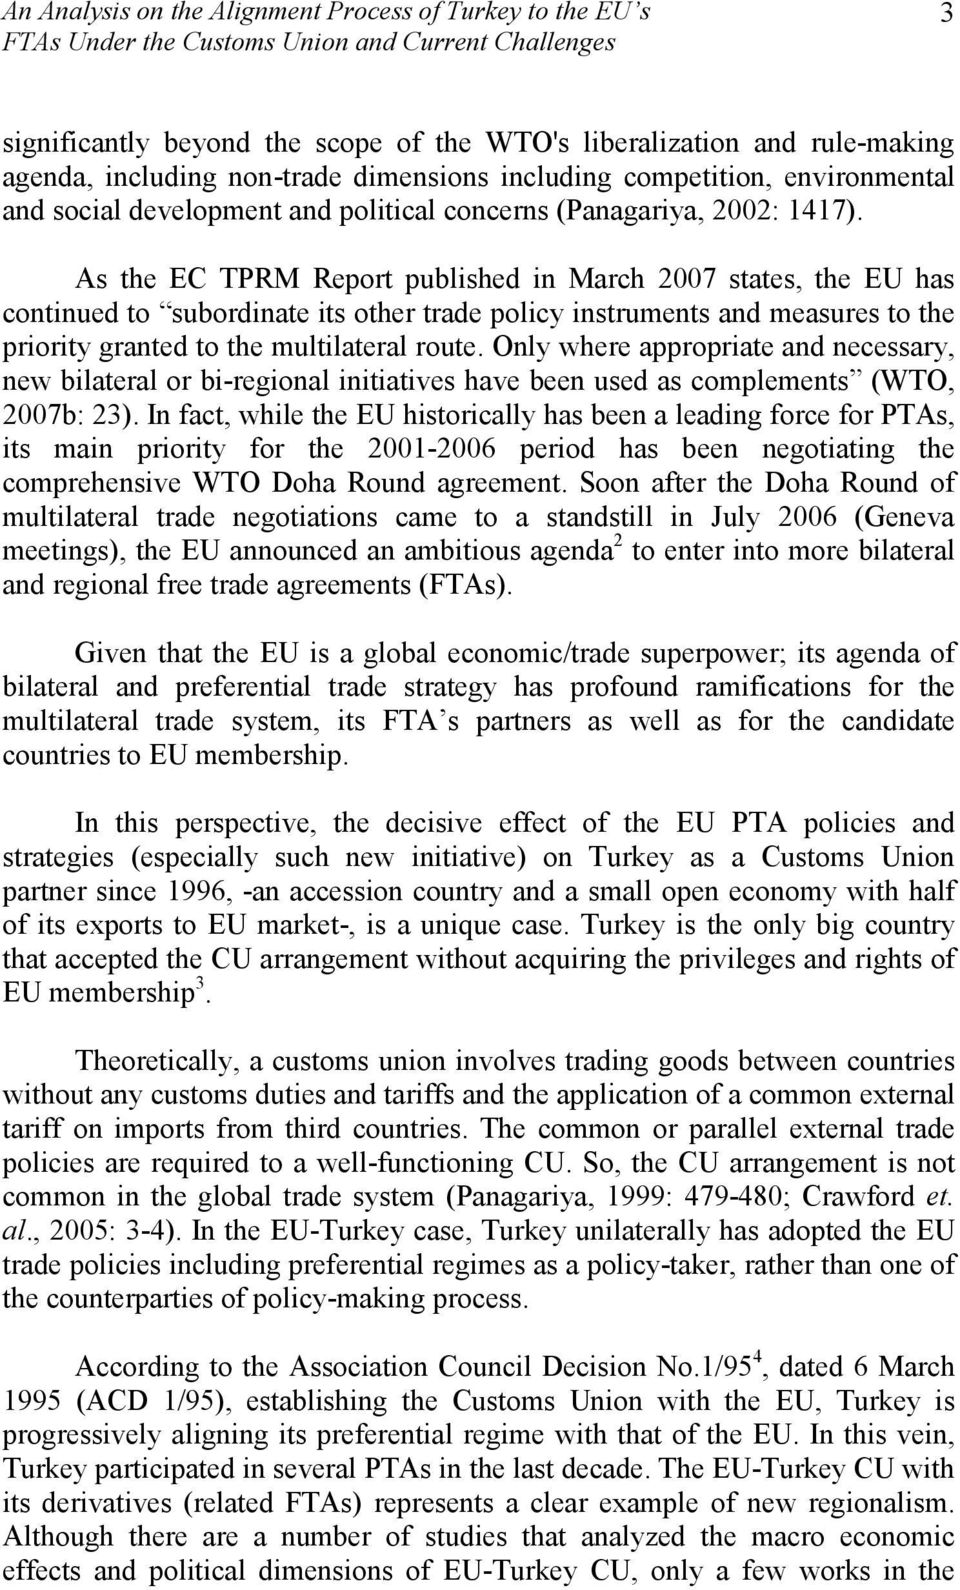 As the EC TPRM Report published in March 2007 states, the EU has continued to subordinate its other trade policy instruments and measures to the priority granted to the multilateral route.